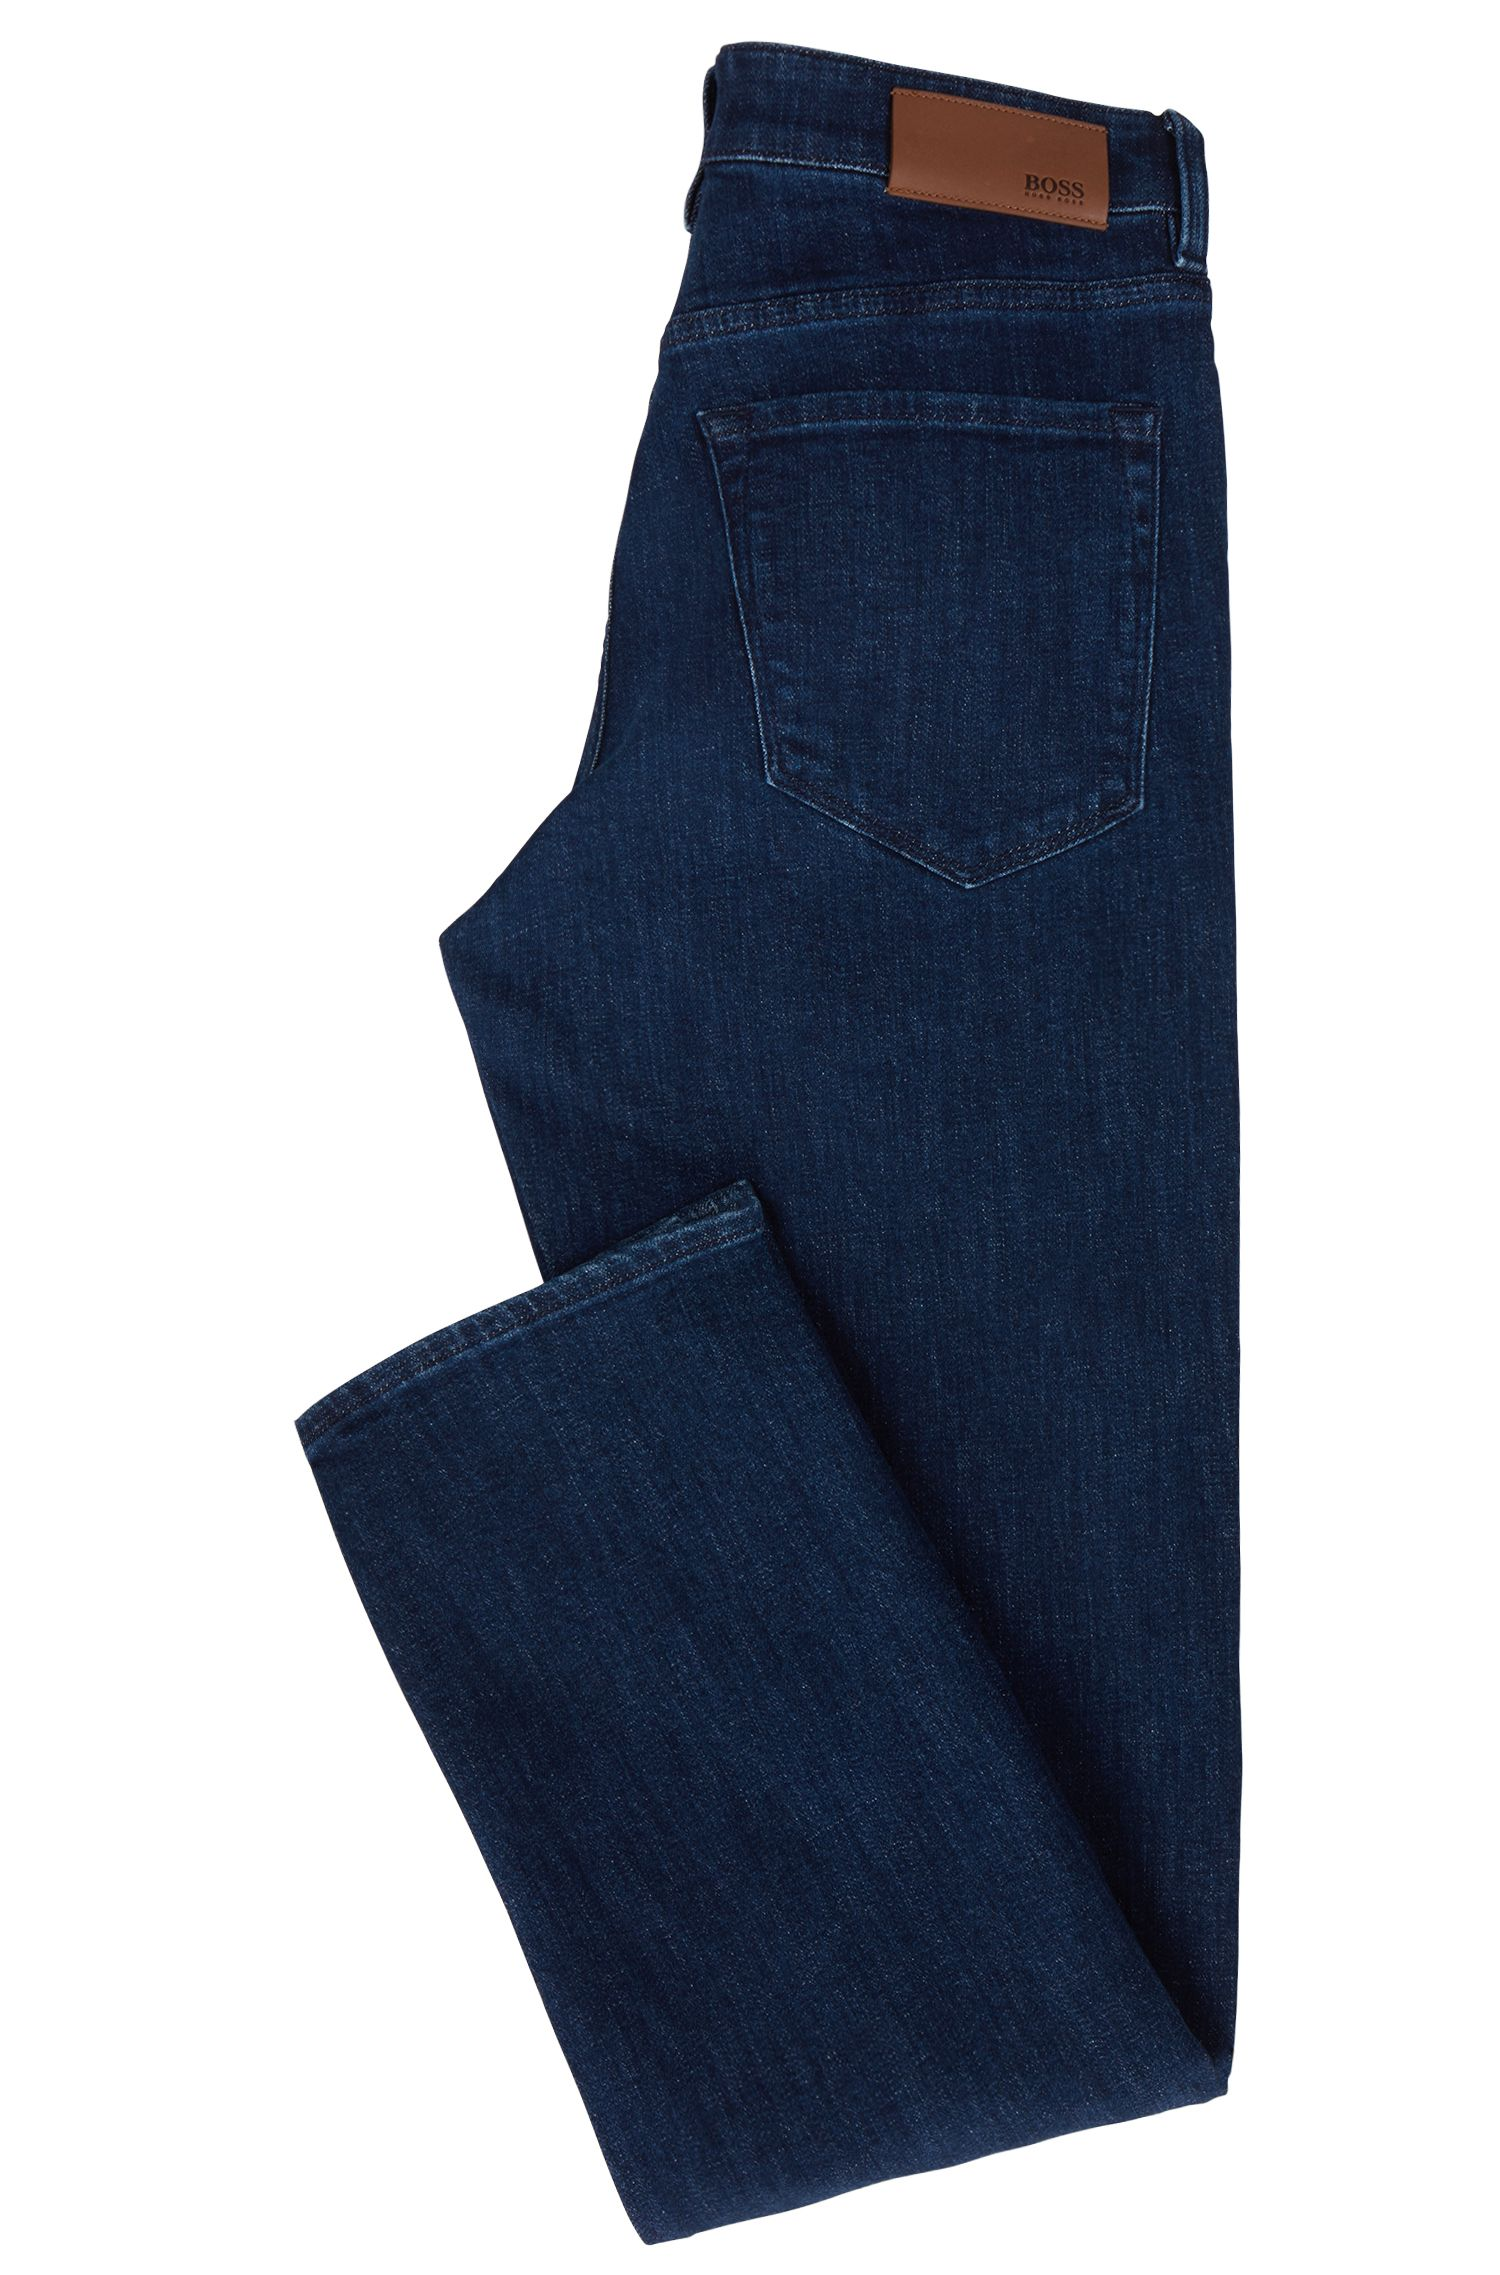 Jean Regular Fit en denim stretch bleu marine confortable, Bleu